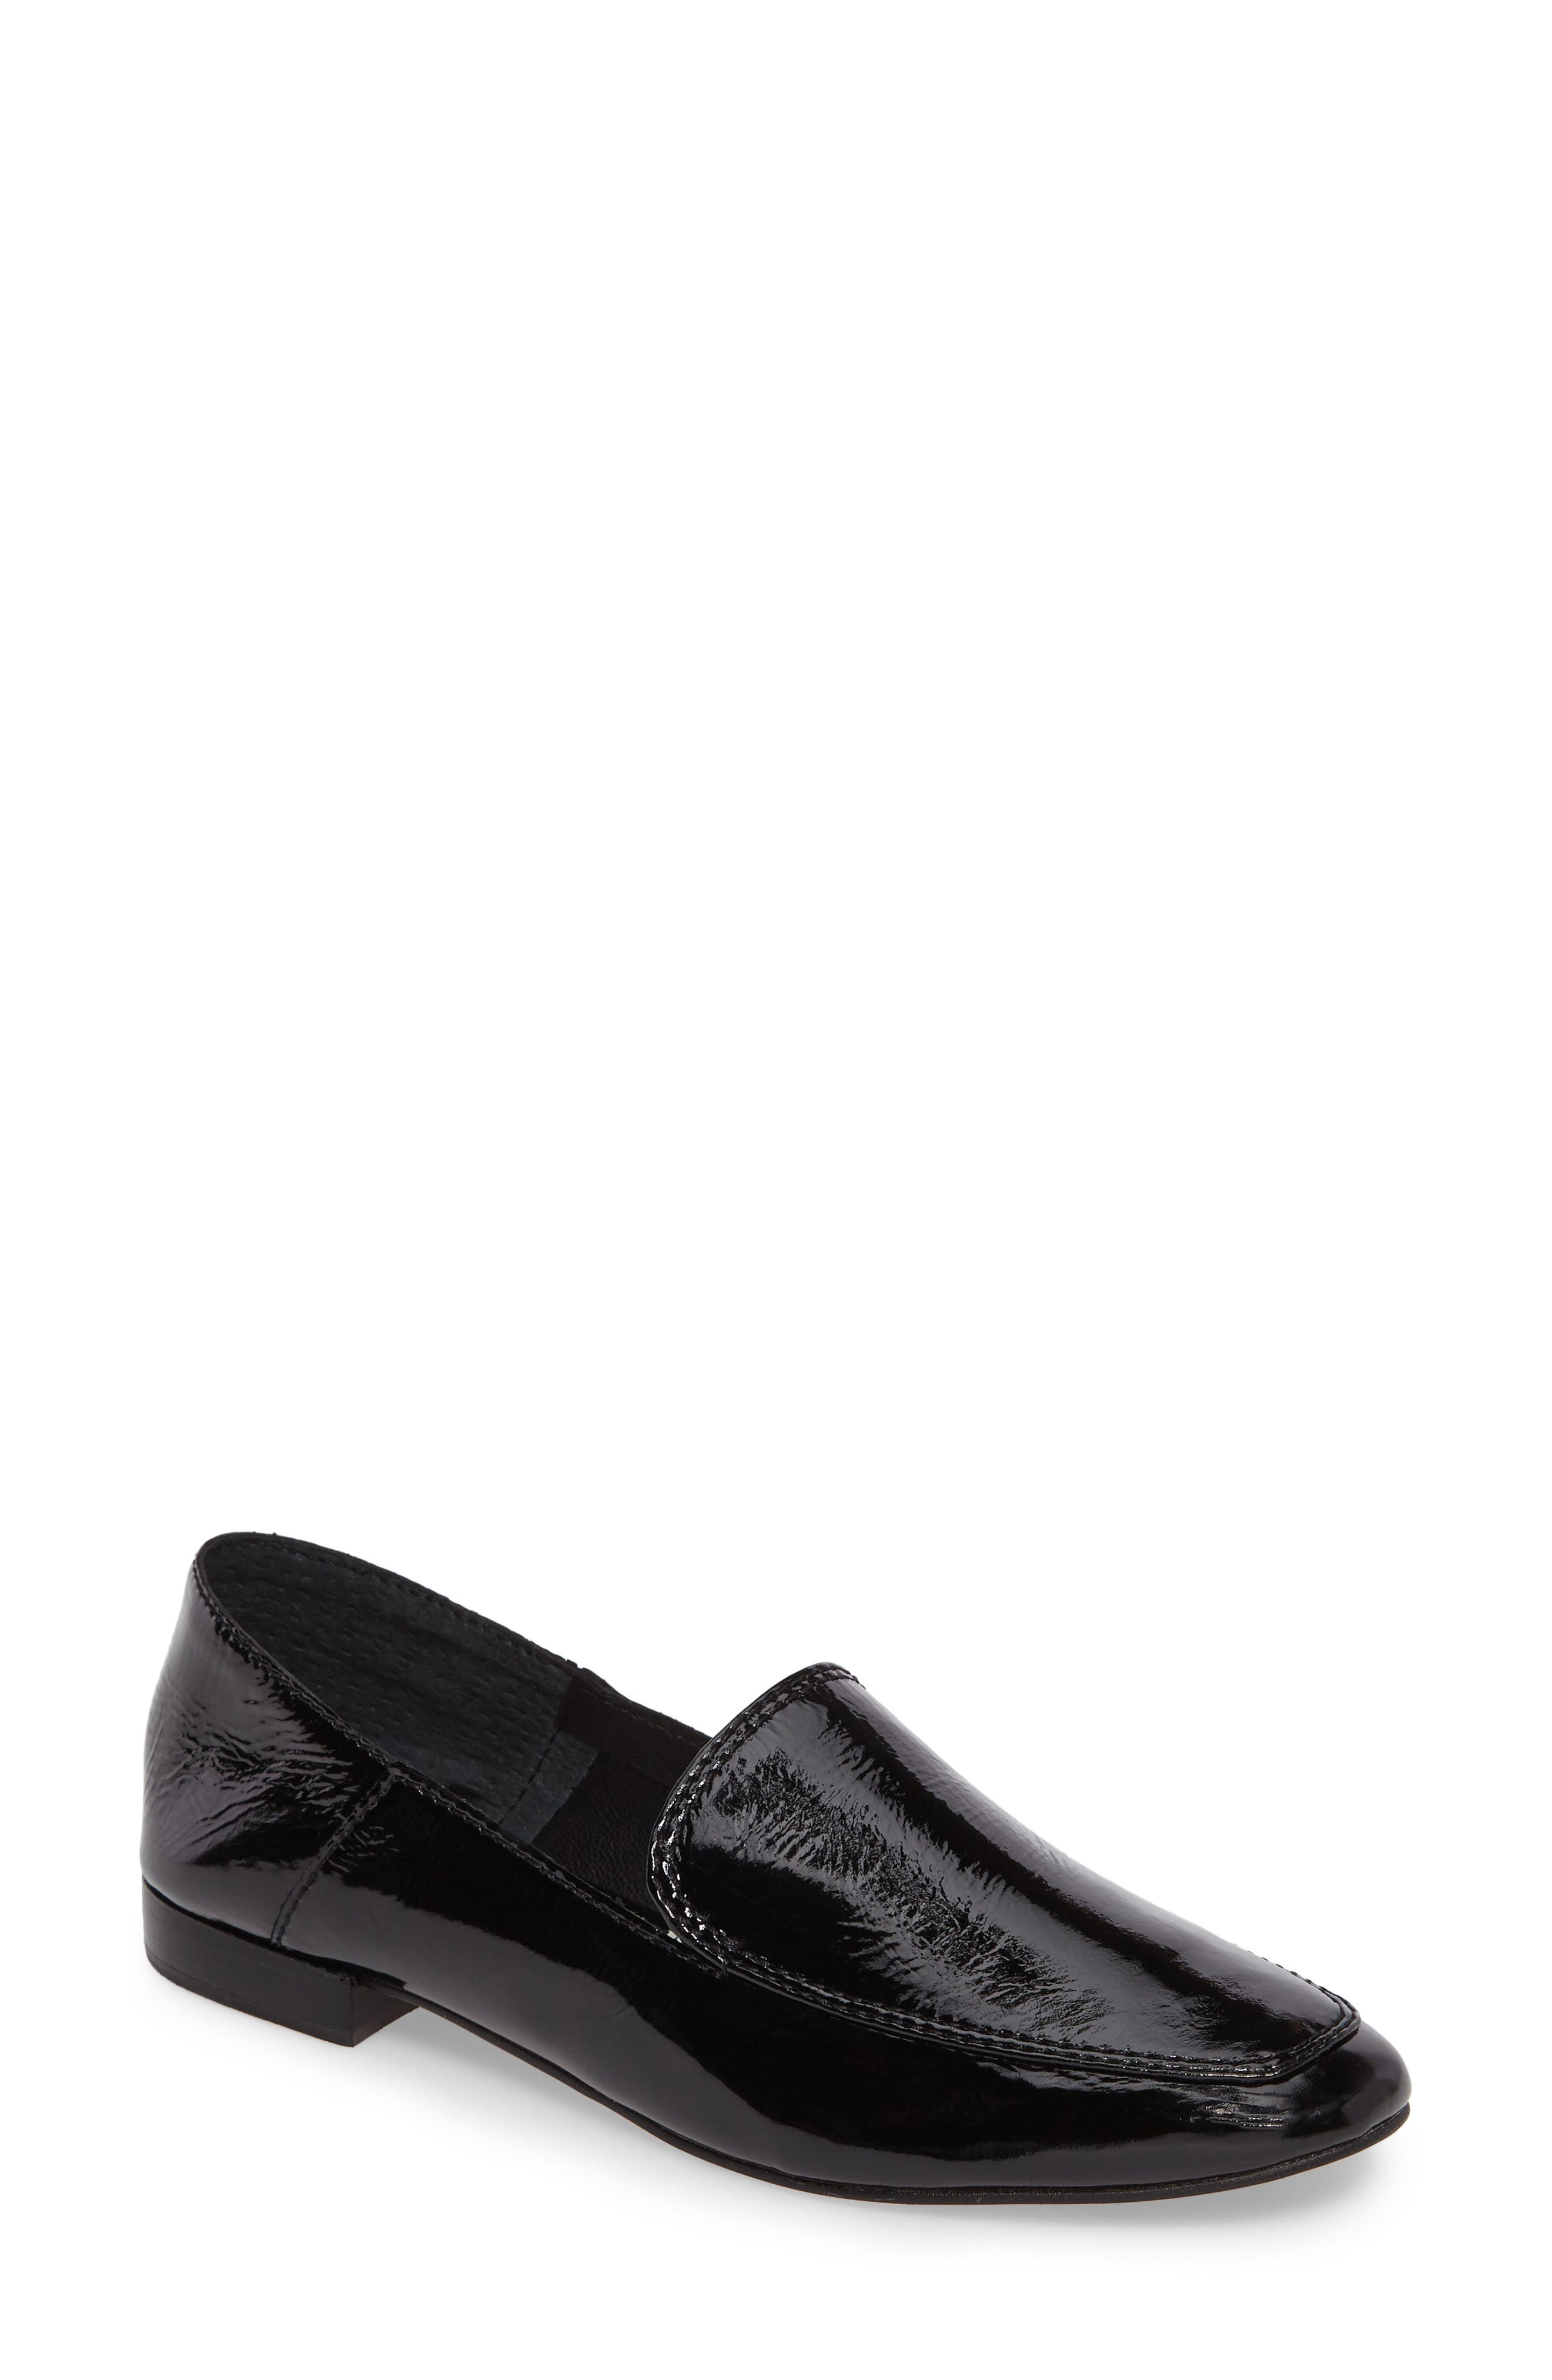 Camden Loafer,                             Main thumbnail 1, color,                             Onyx Patent Leather